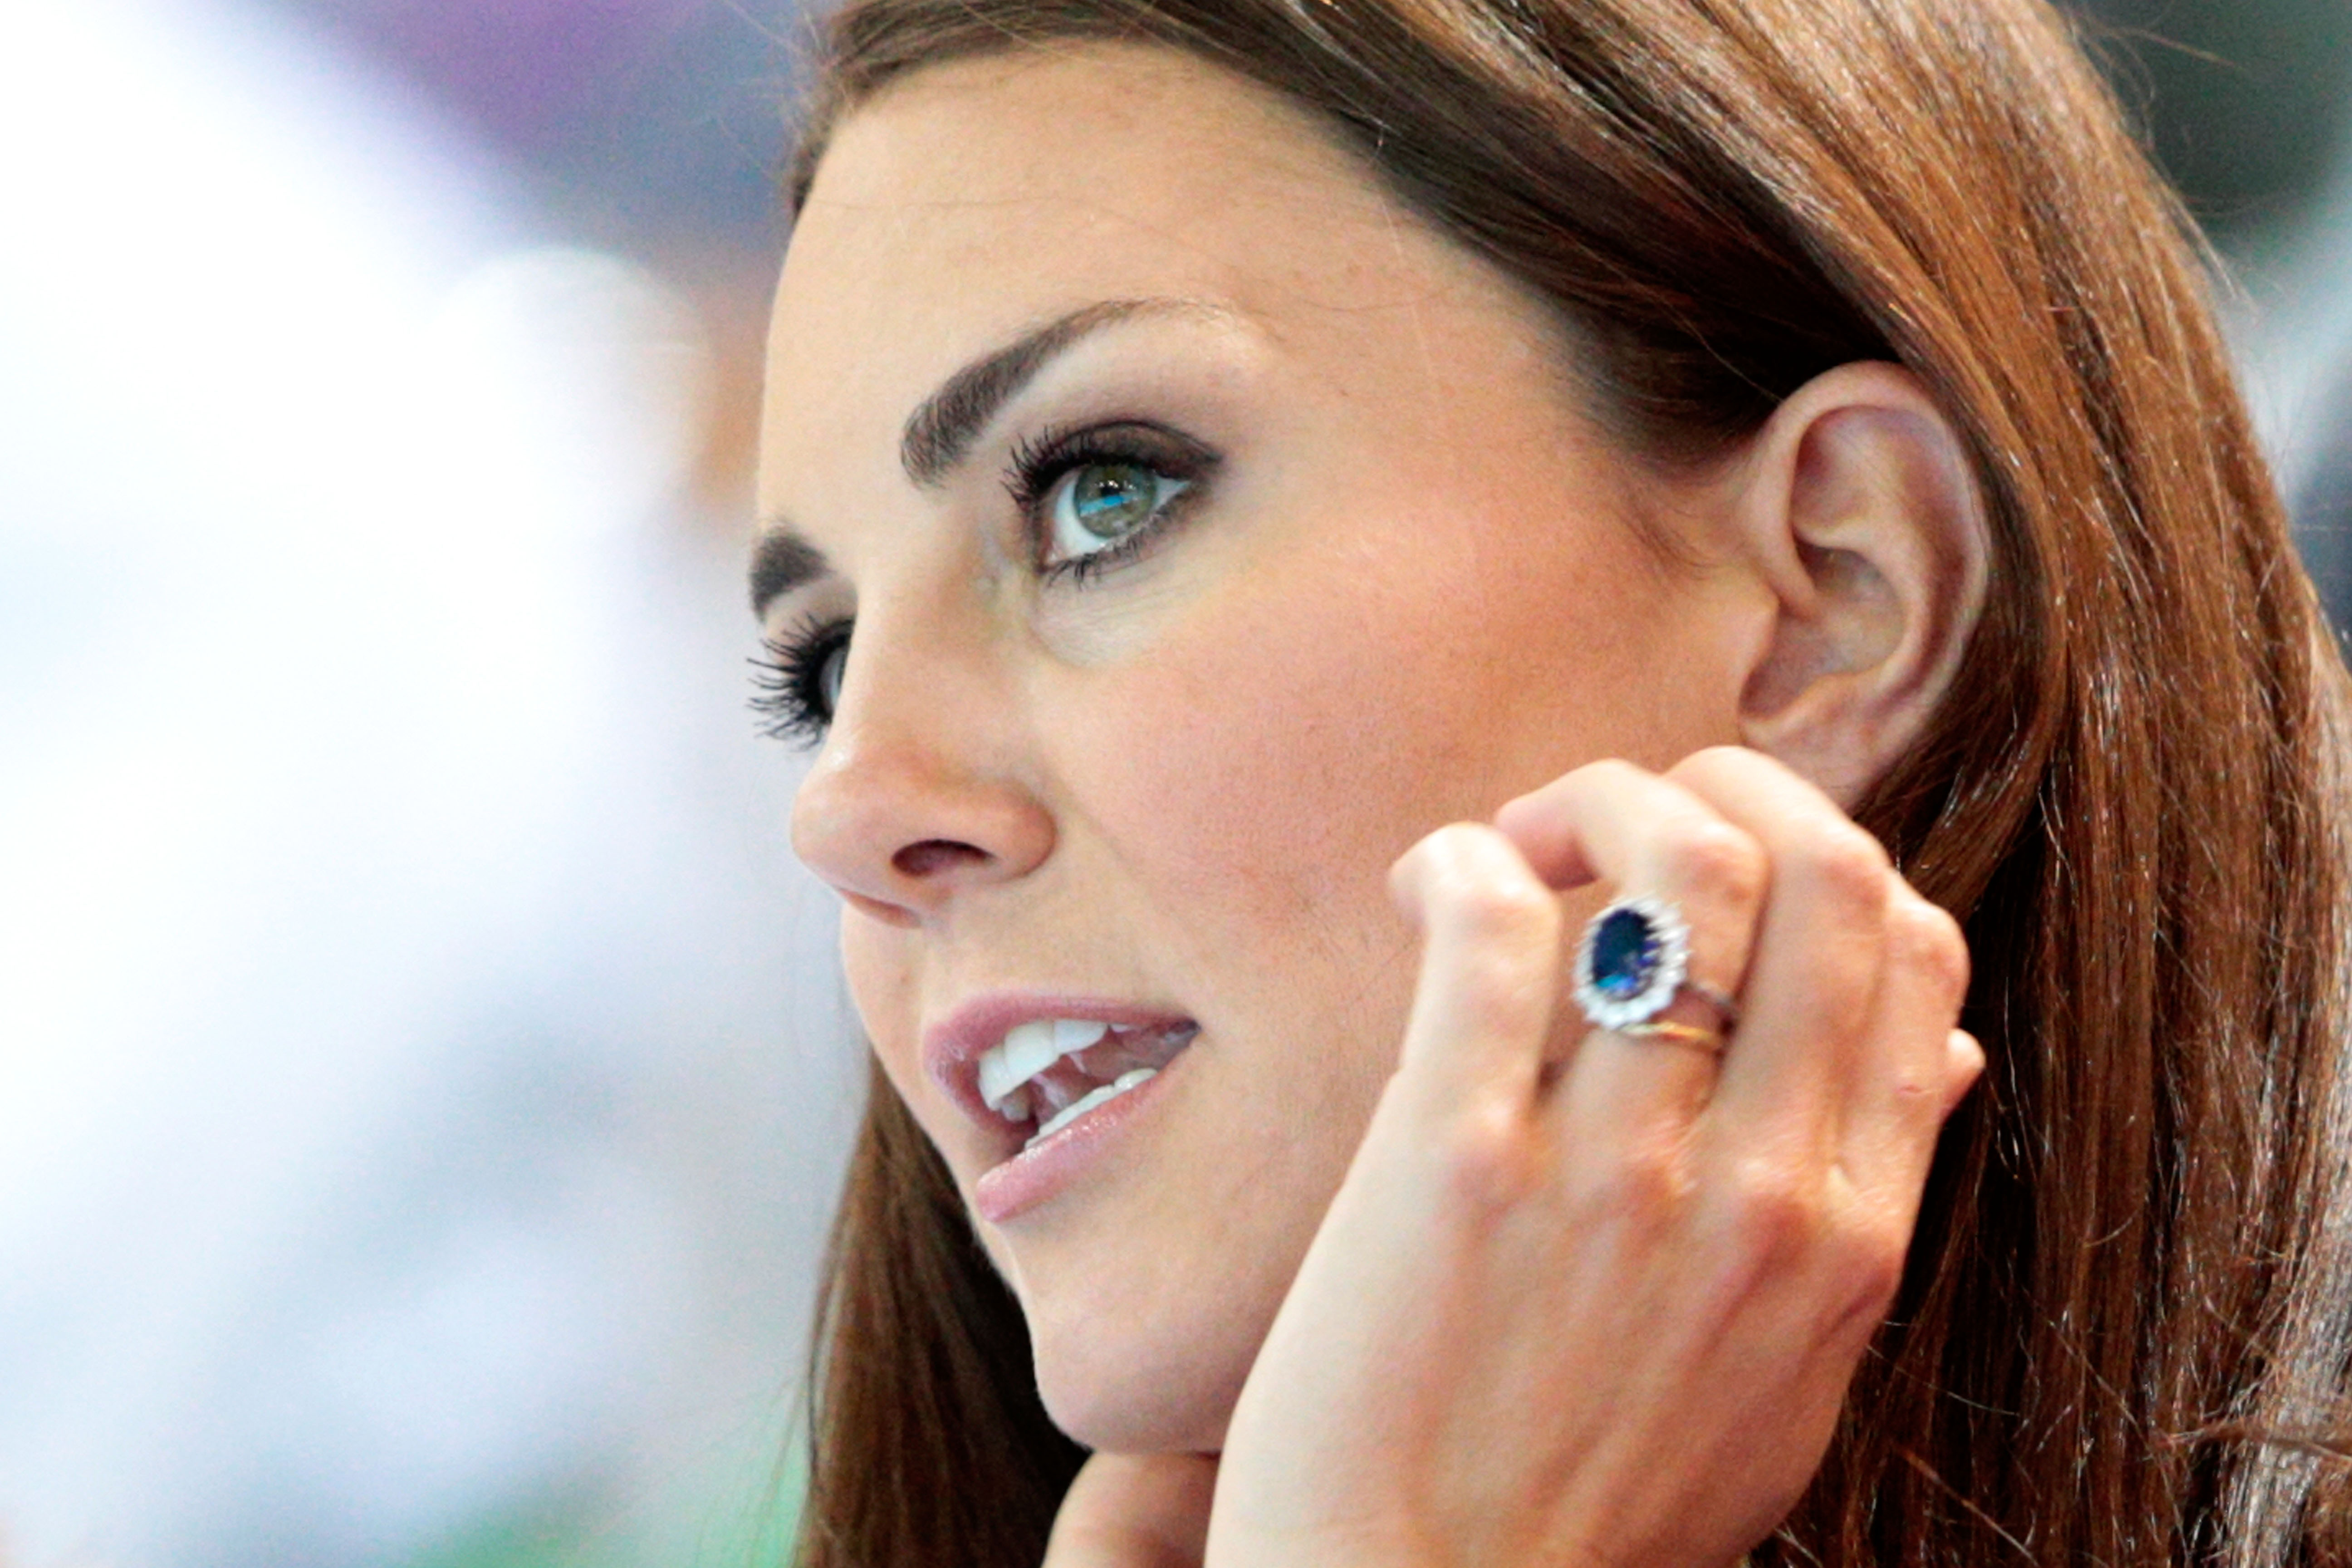 pare meghan markle and kate middleton s enement announcements large size of wedding rings keira knightley enement ring carat princess - Princess Kate Wedding Ring